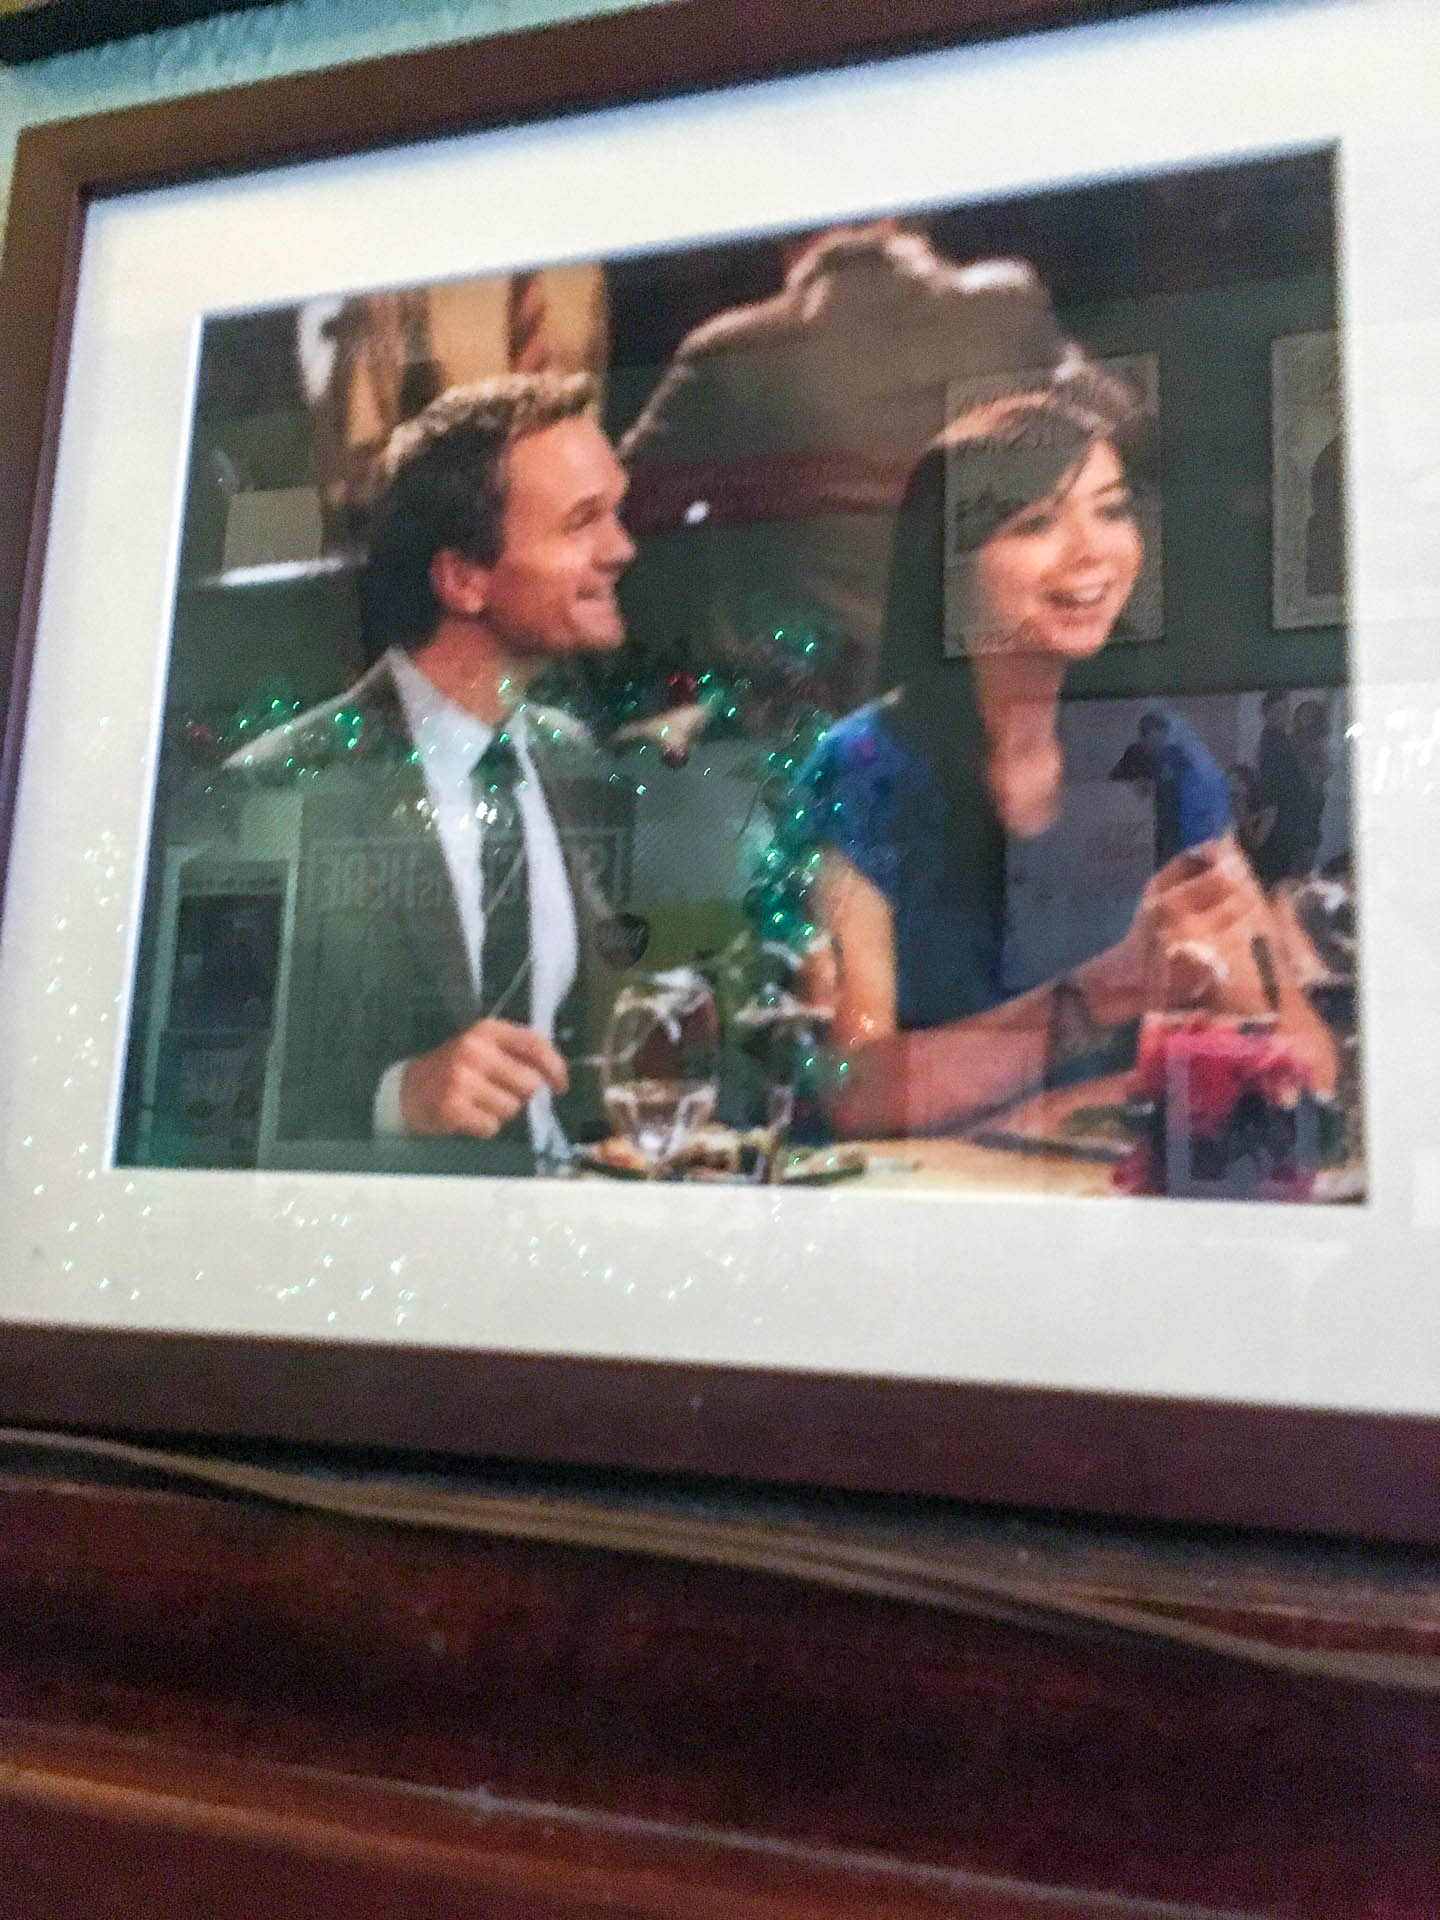 Barney and Lily from How I Met Your Mother drinking at the bar.